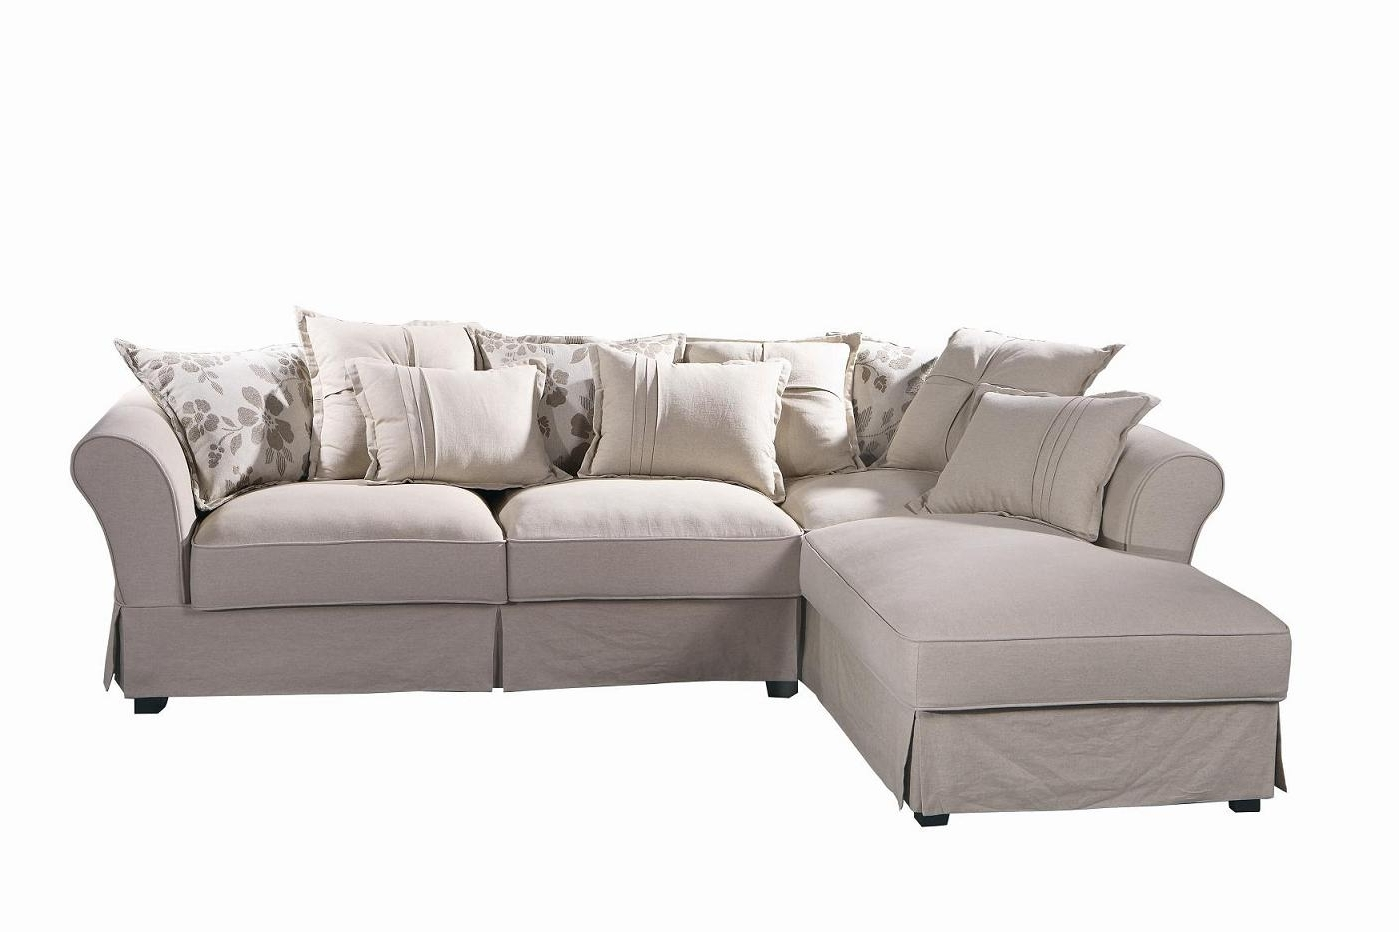 Affordable Sectional Sofas With Regard To Most Recently Released Uncategorized (View 3 of 20)